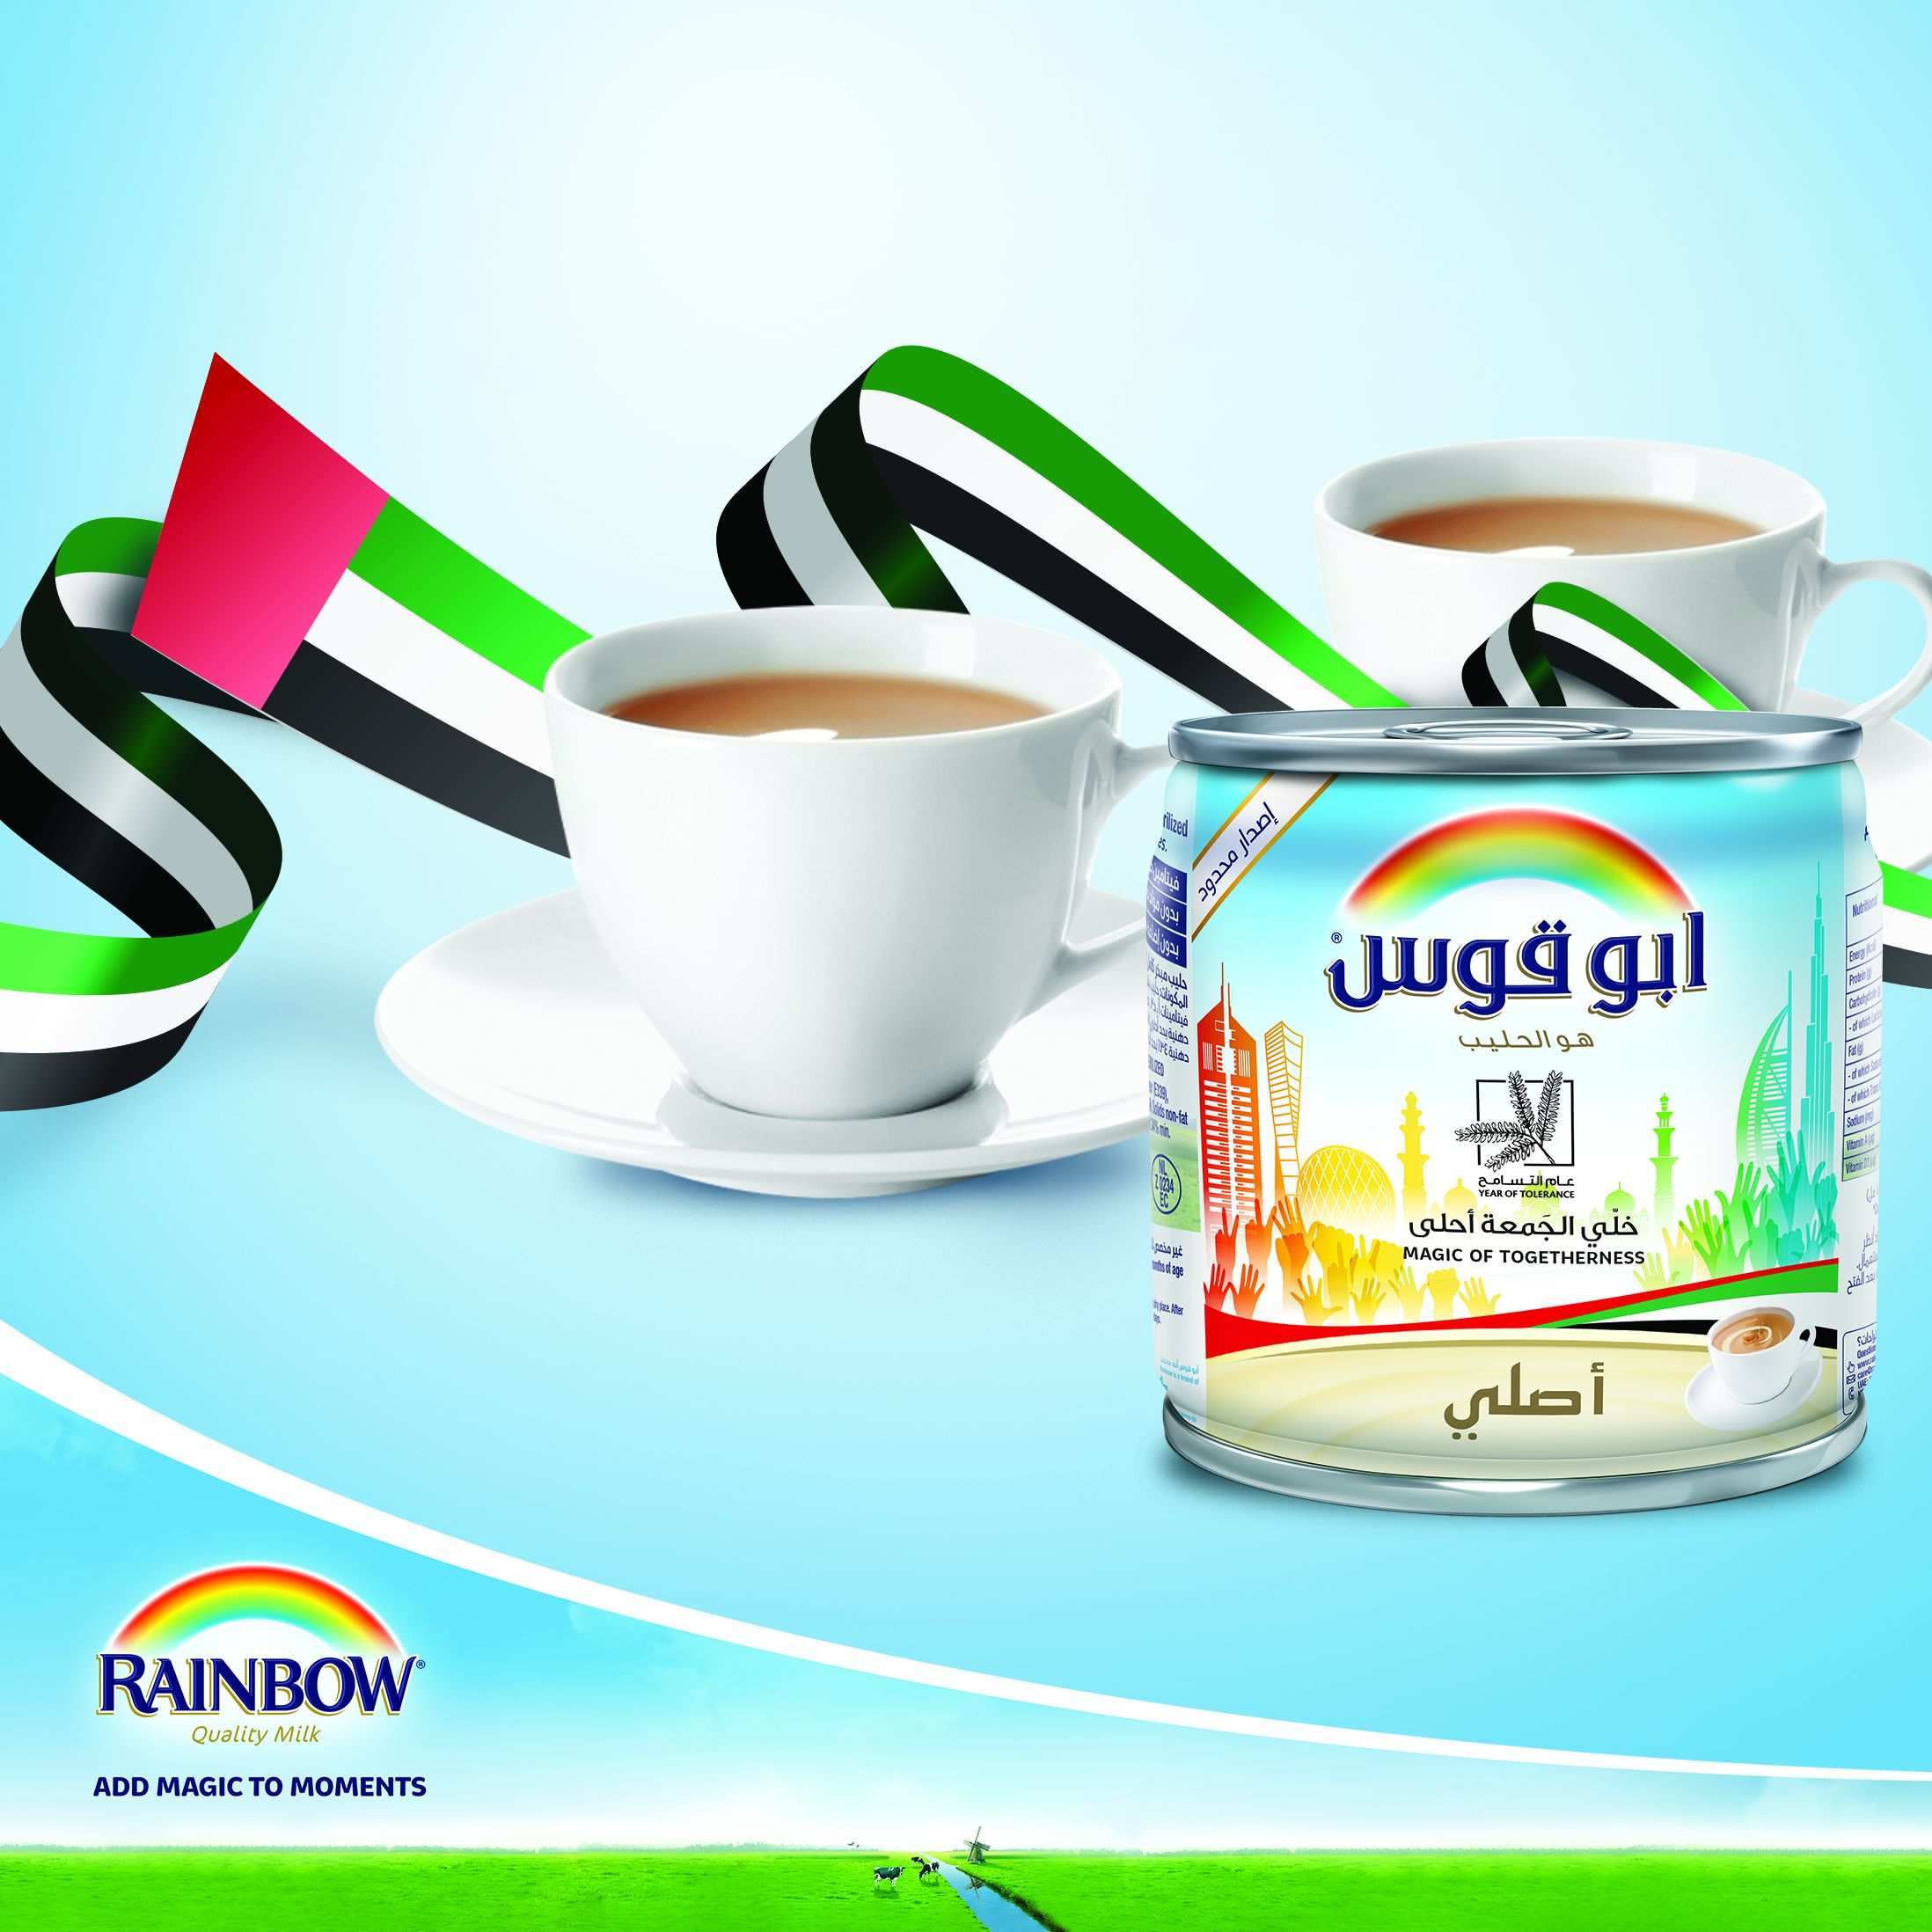 A tribute to the UAE: FrieslandCampina launches limited edition National Day Rainbow Milk can